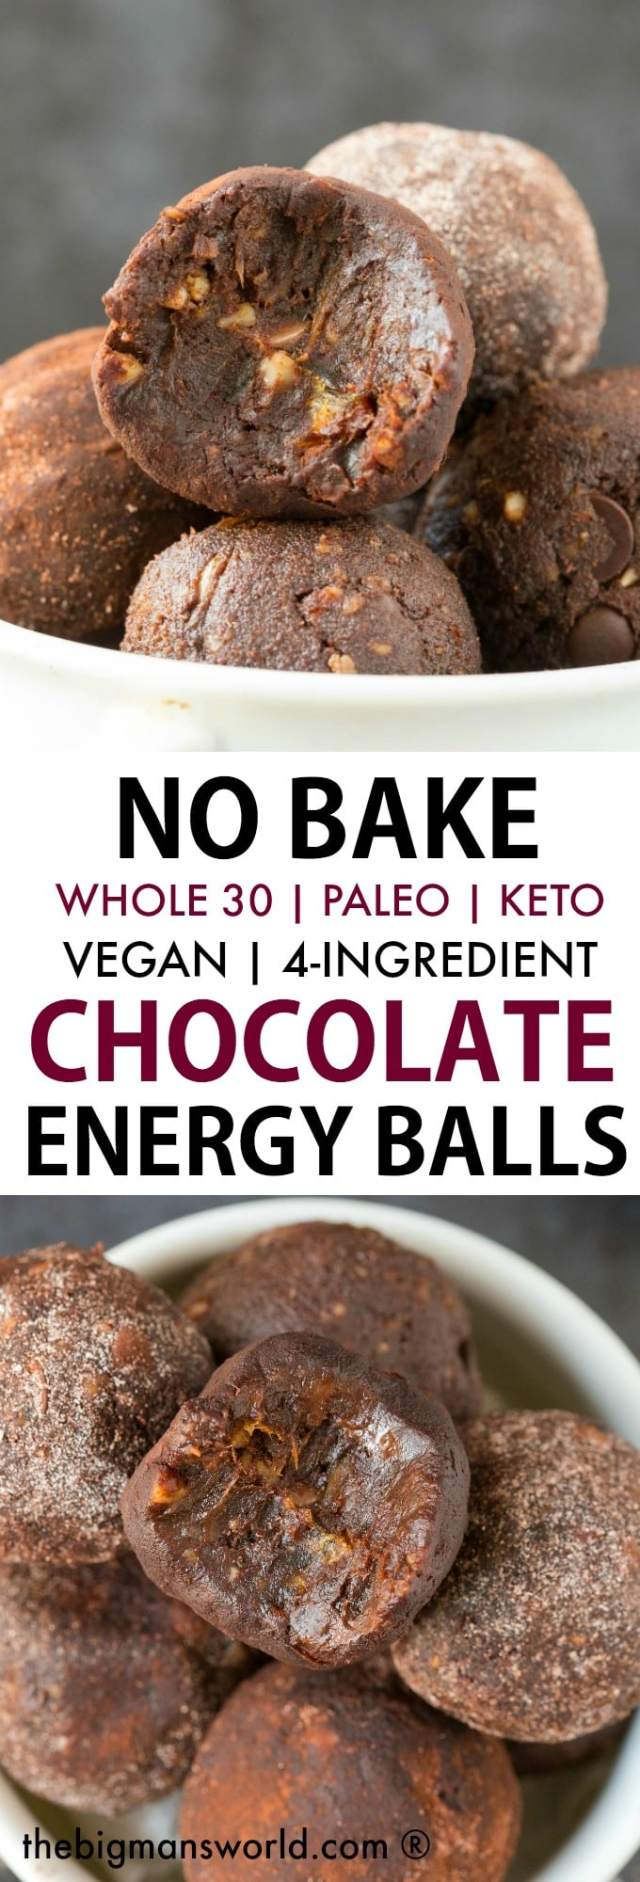 A collage of two images of chocolate energy balls- The top image features a white bowl with chocolate balls in them, the center text says No Bake Whole 30, paleo and keto chocolate energy balls and the bottom image is an overhead view of the energy balls, with a bite mark out of it